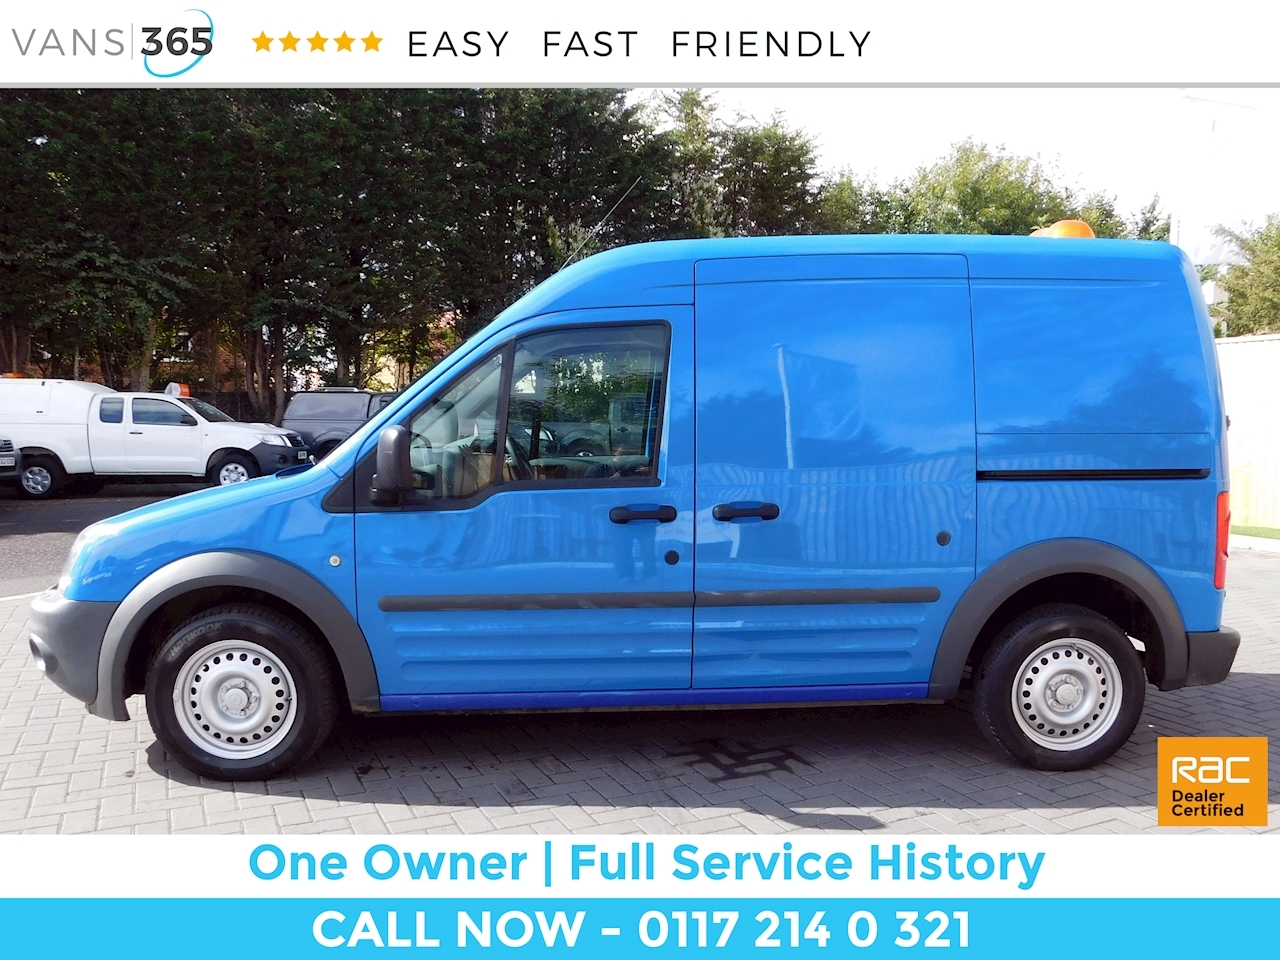 Used 2012 Ford Transit Connect T230 Hr P/V Vdpf 1.8 5dr Small Van Manual  Diesel For Sale in Bristol | Vans 365